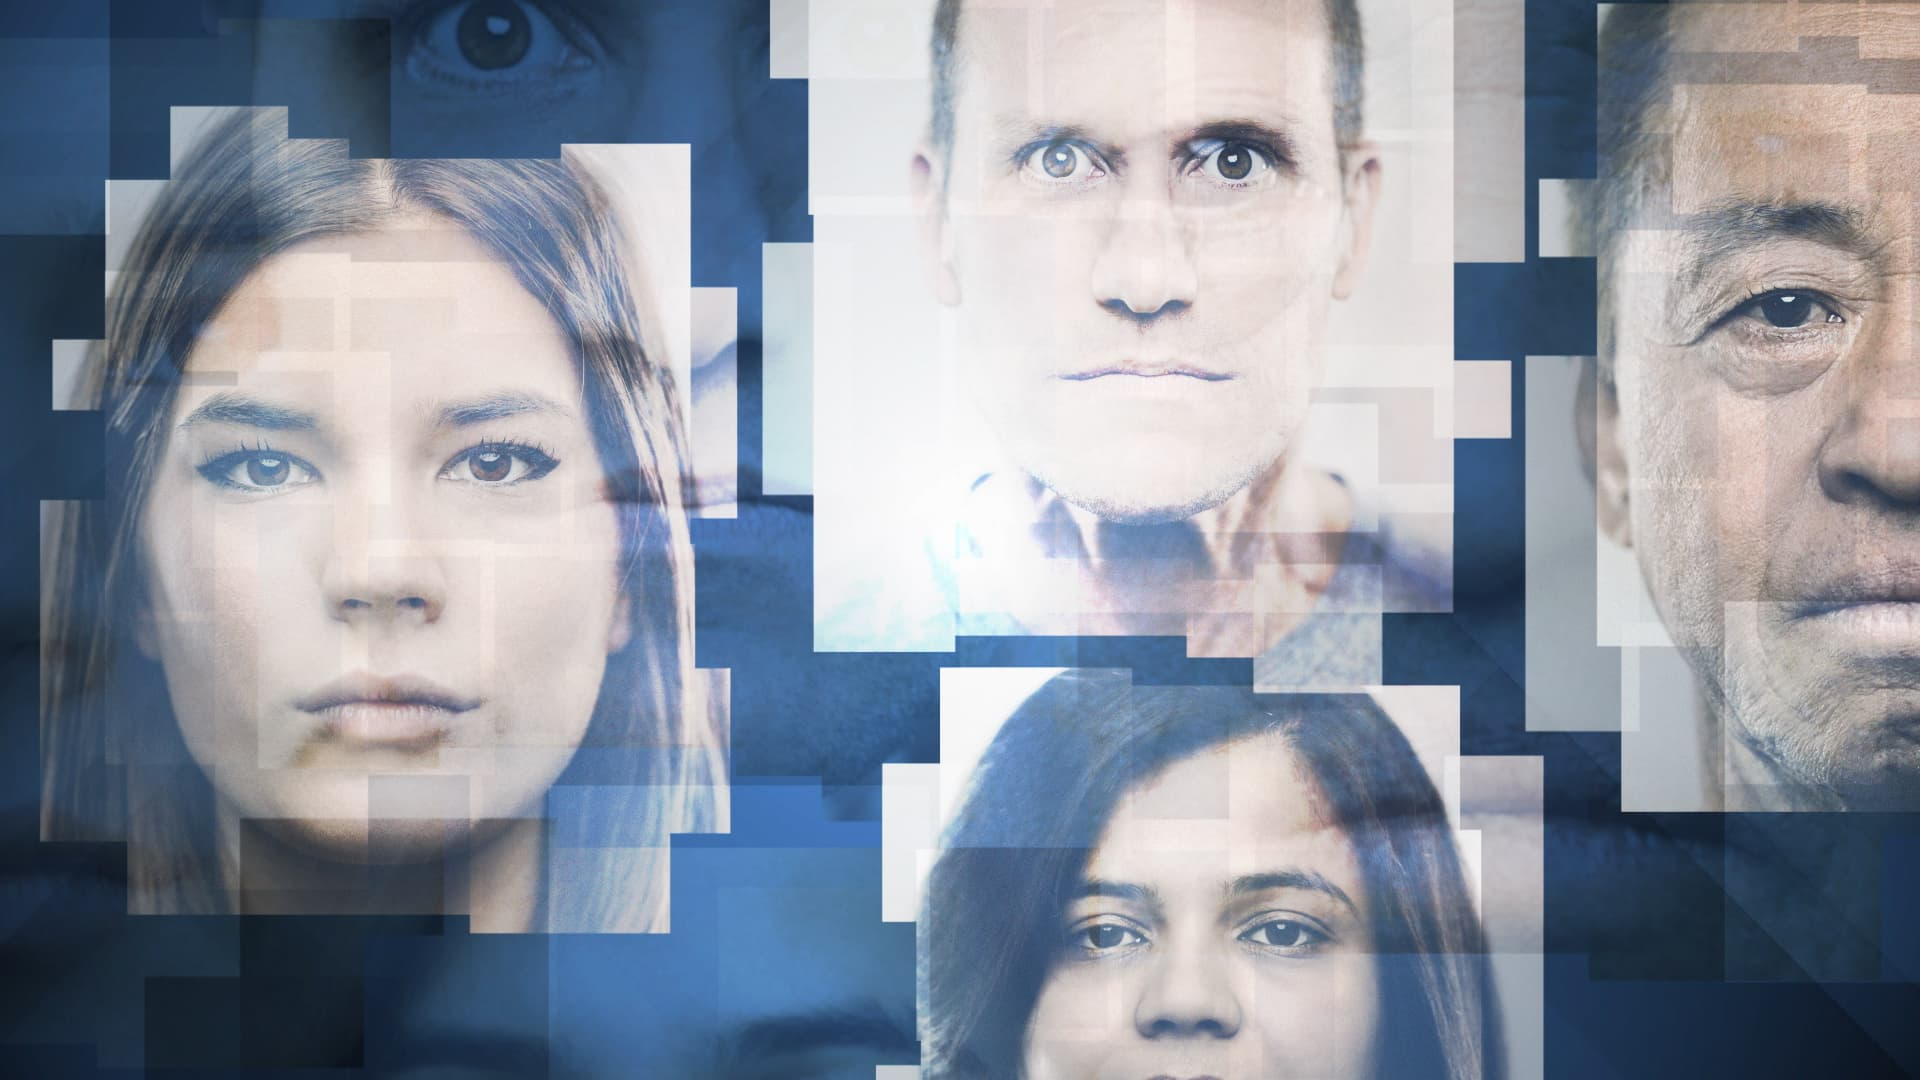 Why police usage of facial recognition has come under scrutiny 10